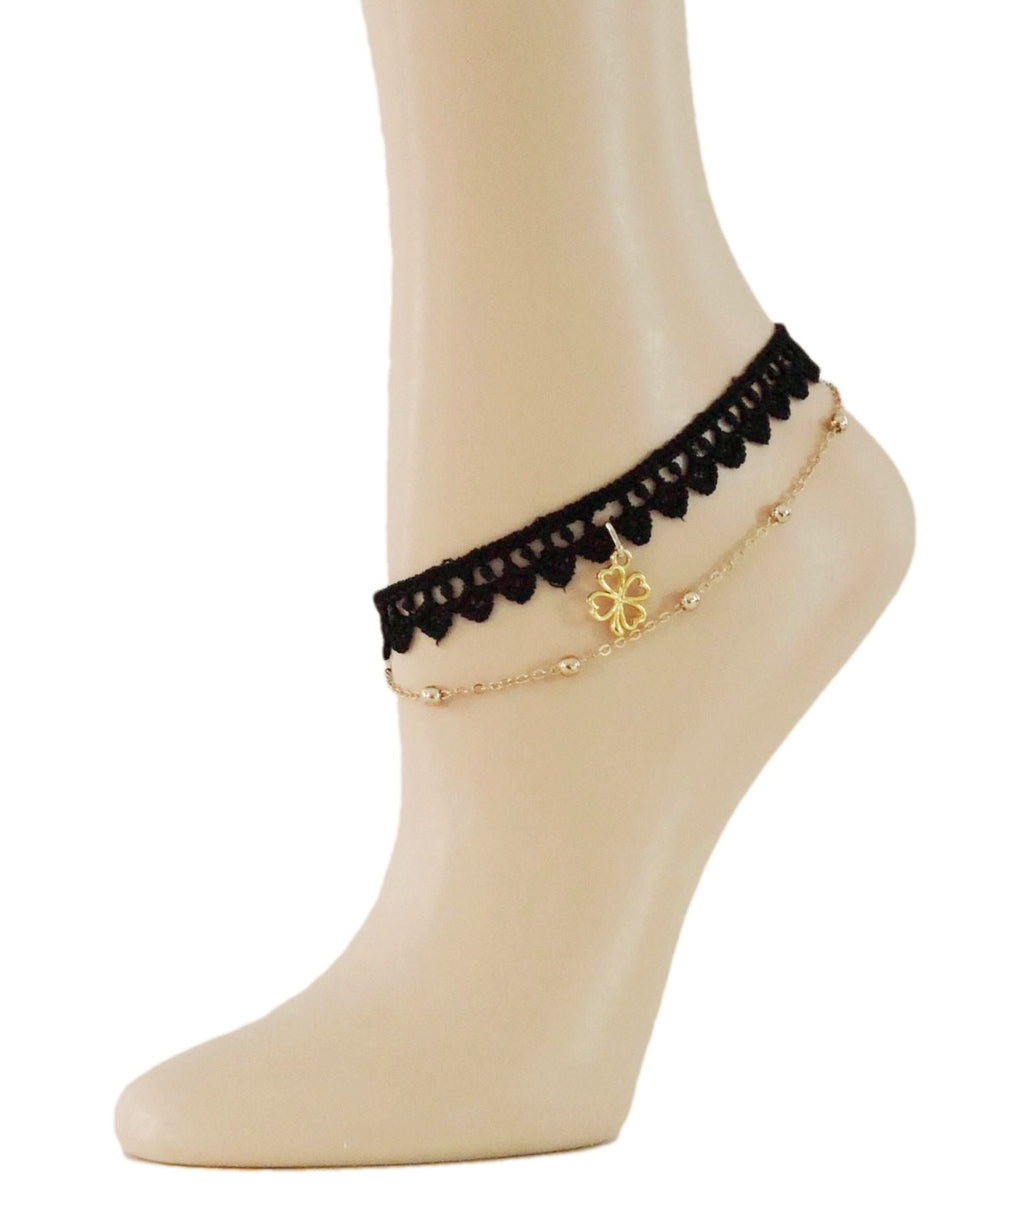 DIY Valerie Anklet - Global Trendz Fashion®